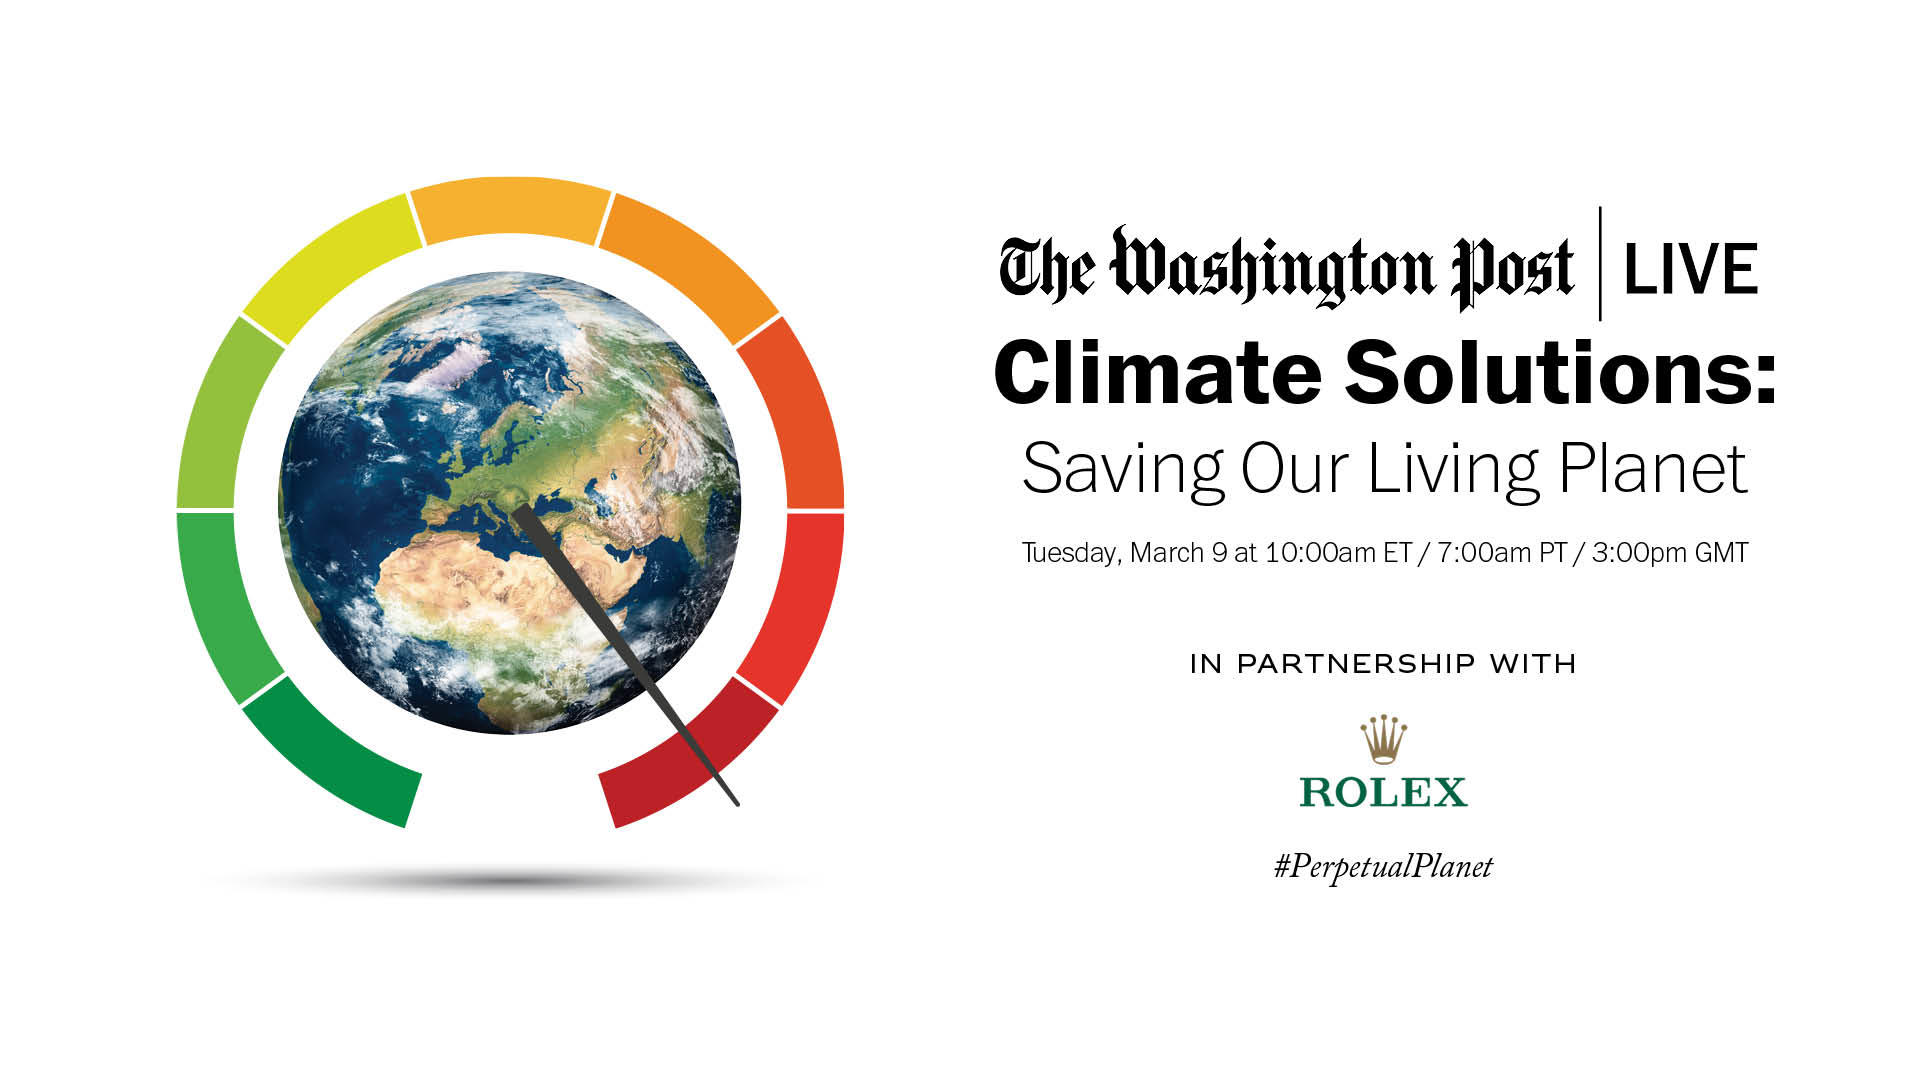 Saving our Living Planet webinar. March 9 at 7 pm.